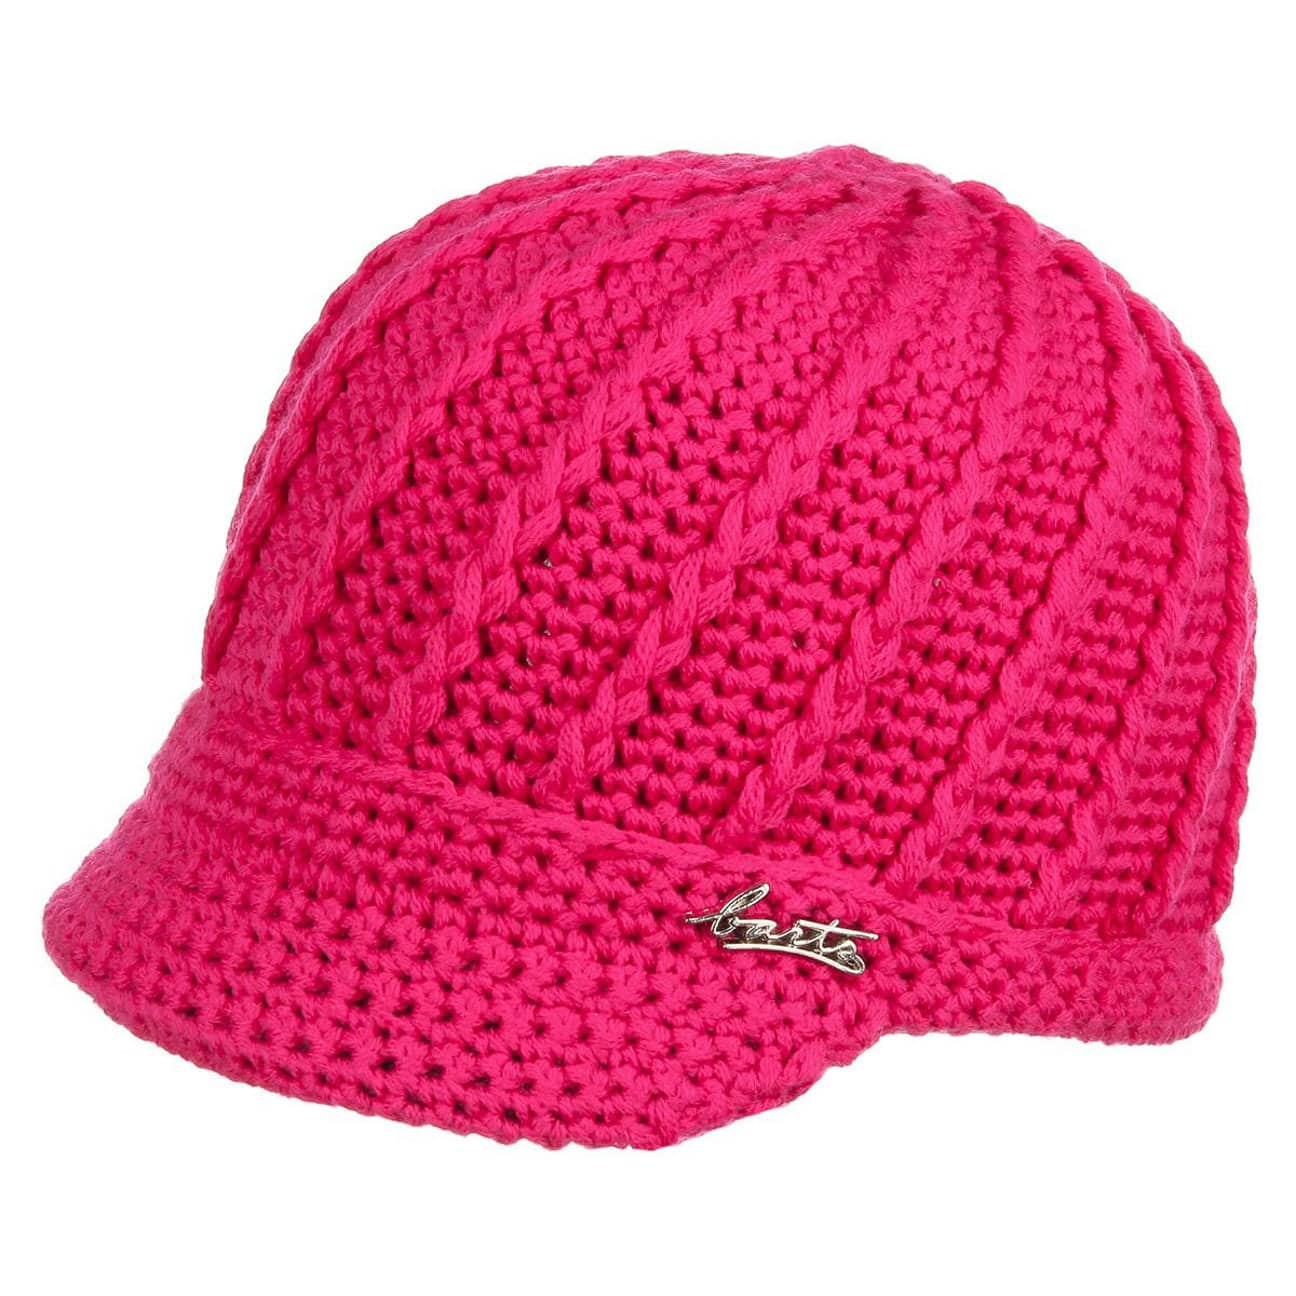 Liv Kids Beanie with Peak by Barts, EUR 12,95 --> Hats ...